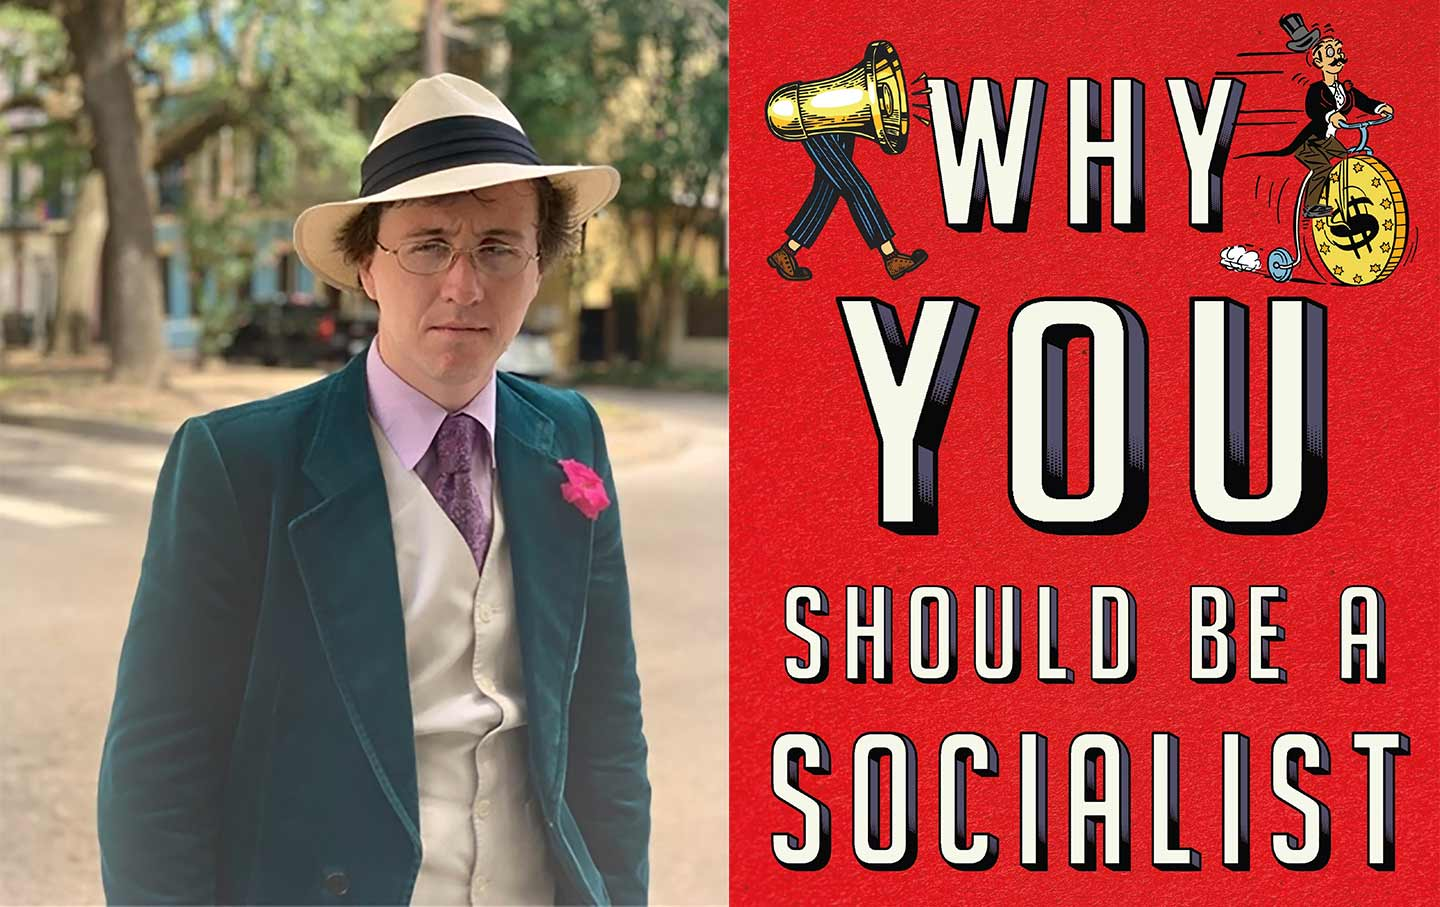 Nathan J. Robinson Wants You to Be a Socialist